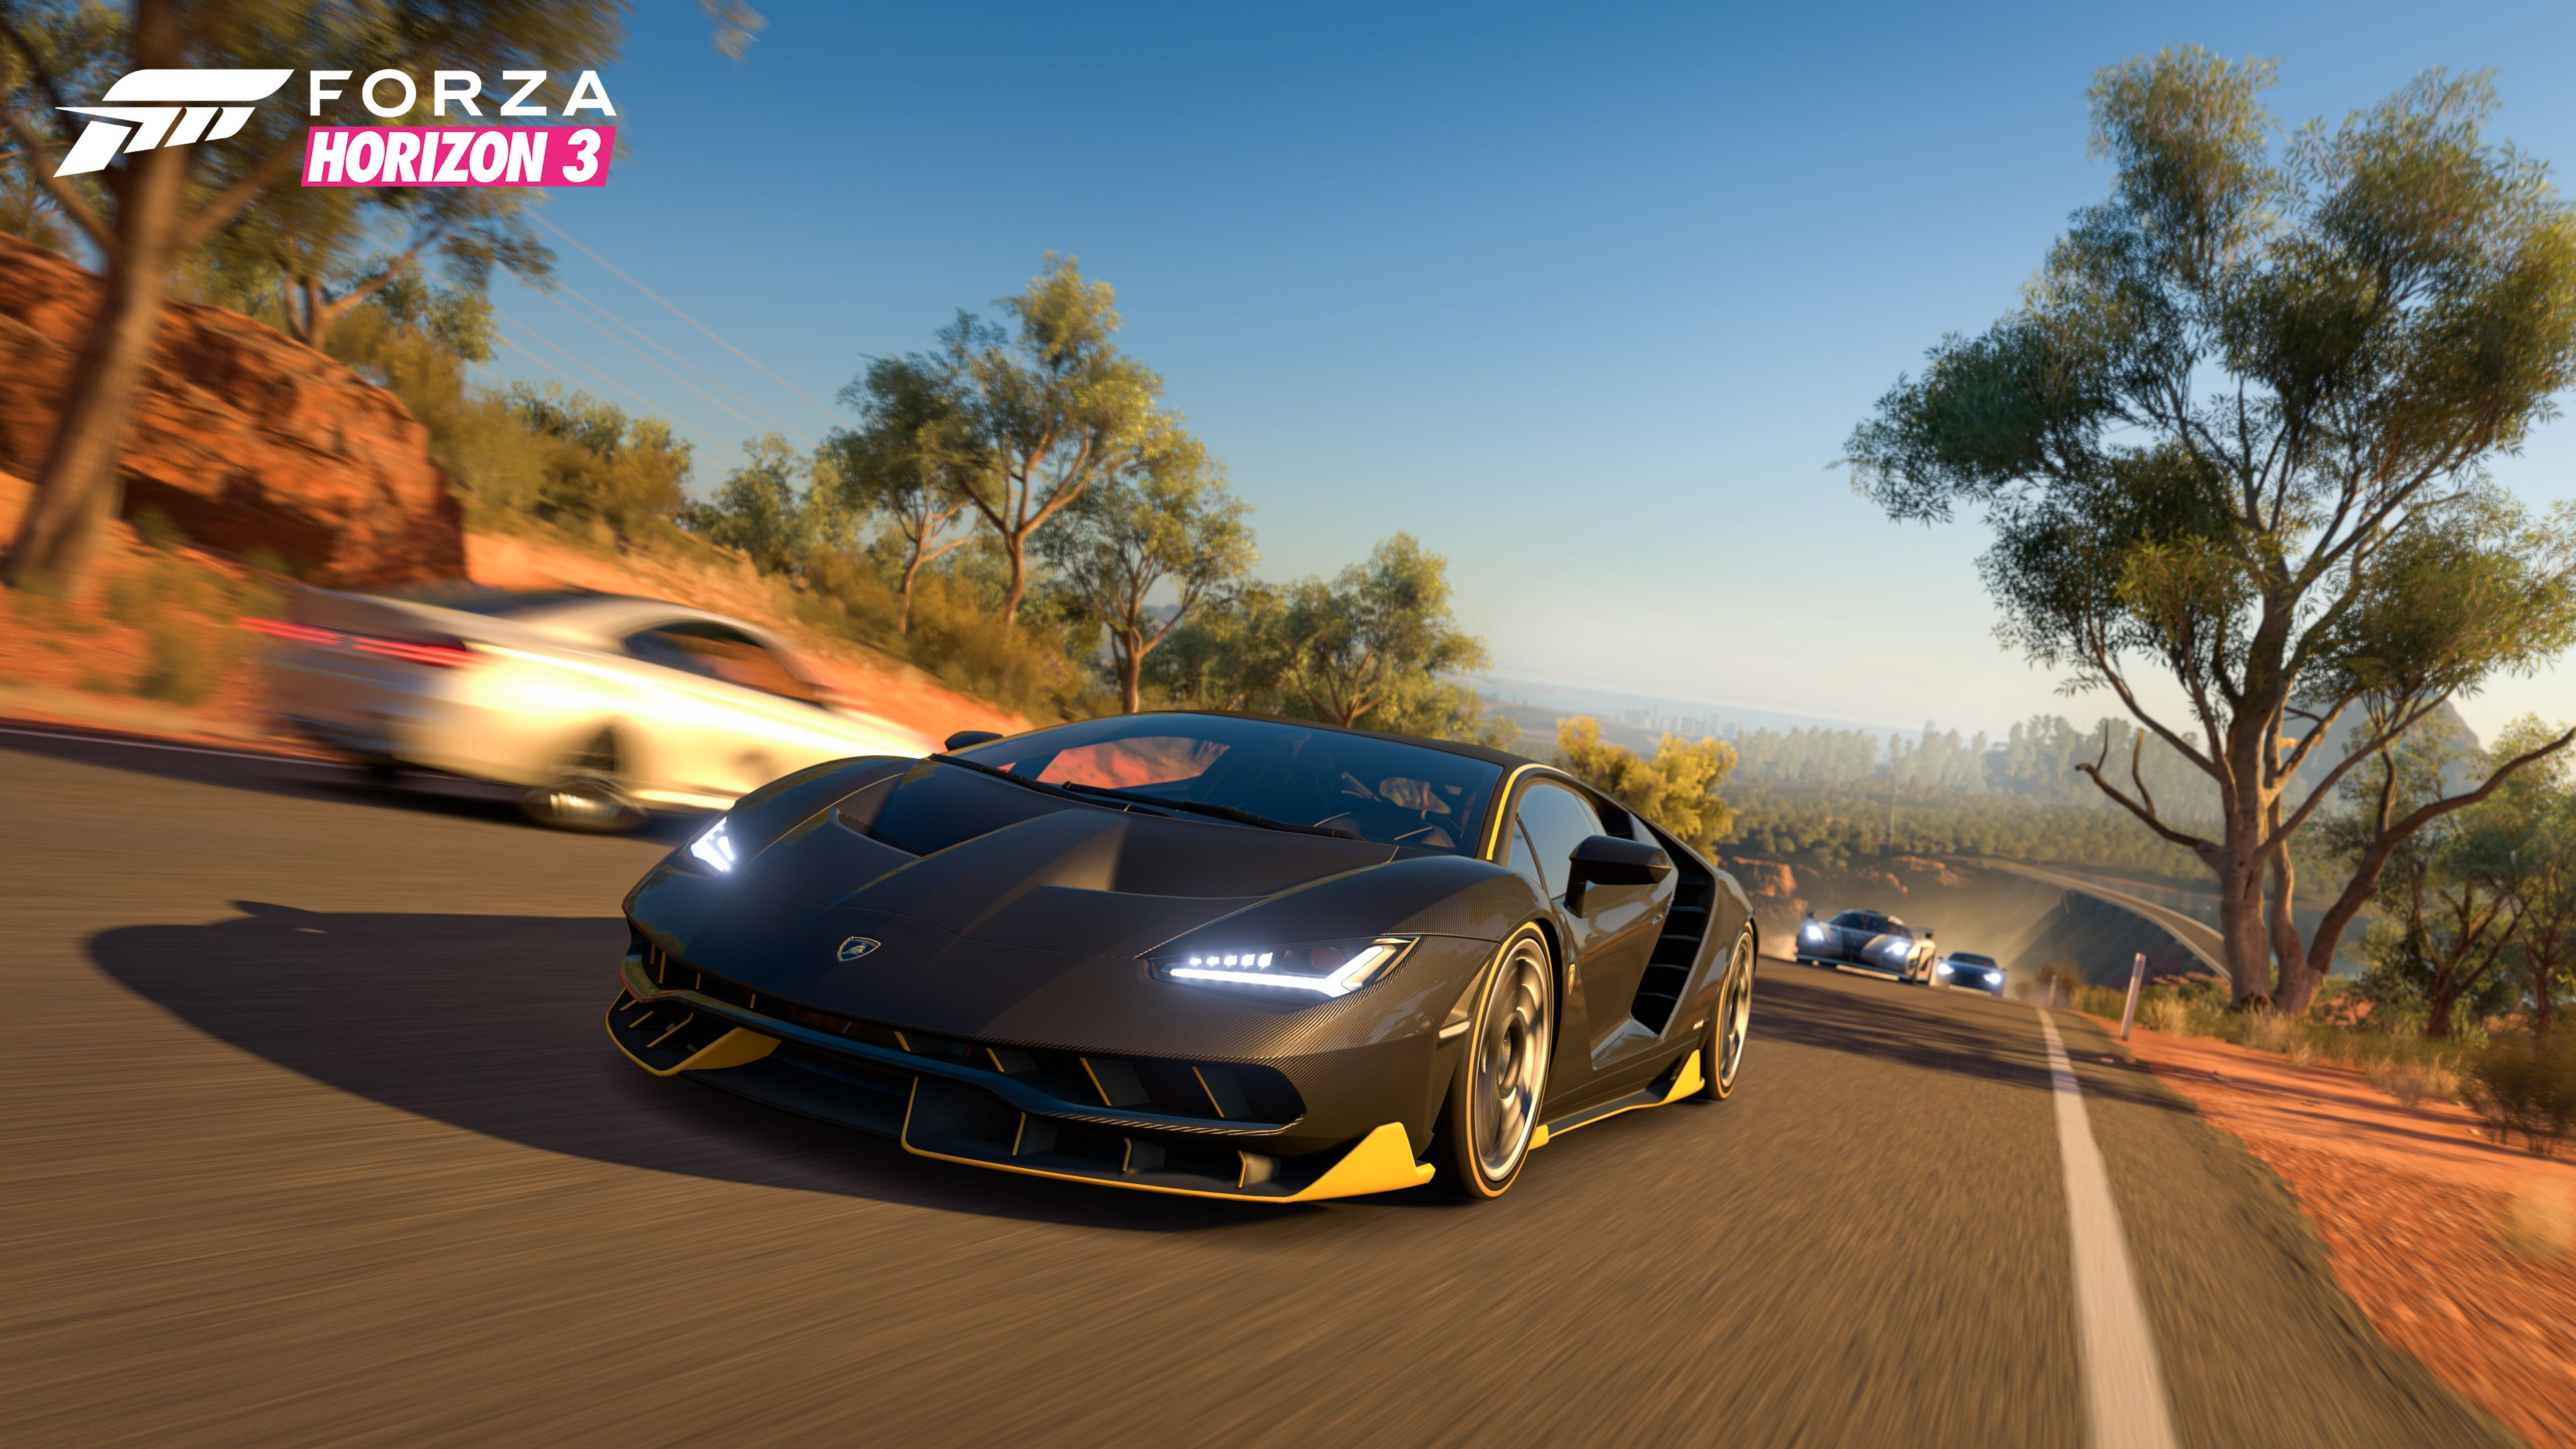 380 Forza Horizon 3 Hd Wallpapers Background Images Wallpaper Abyss